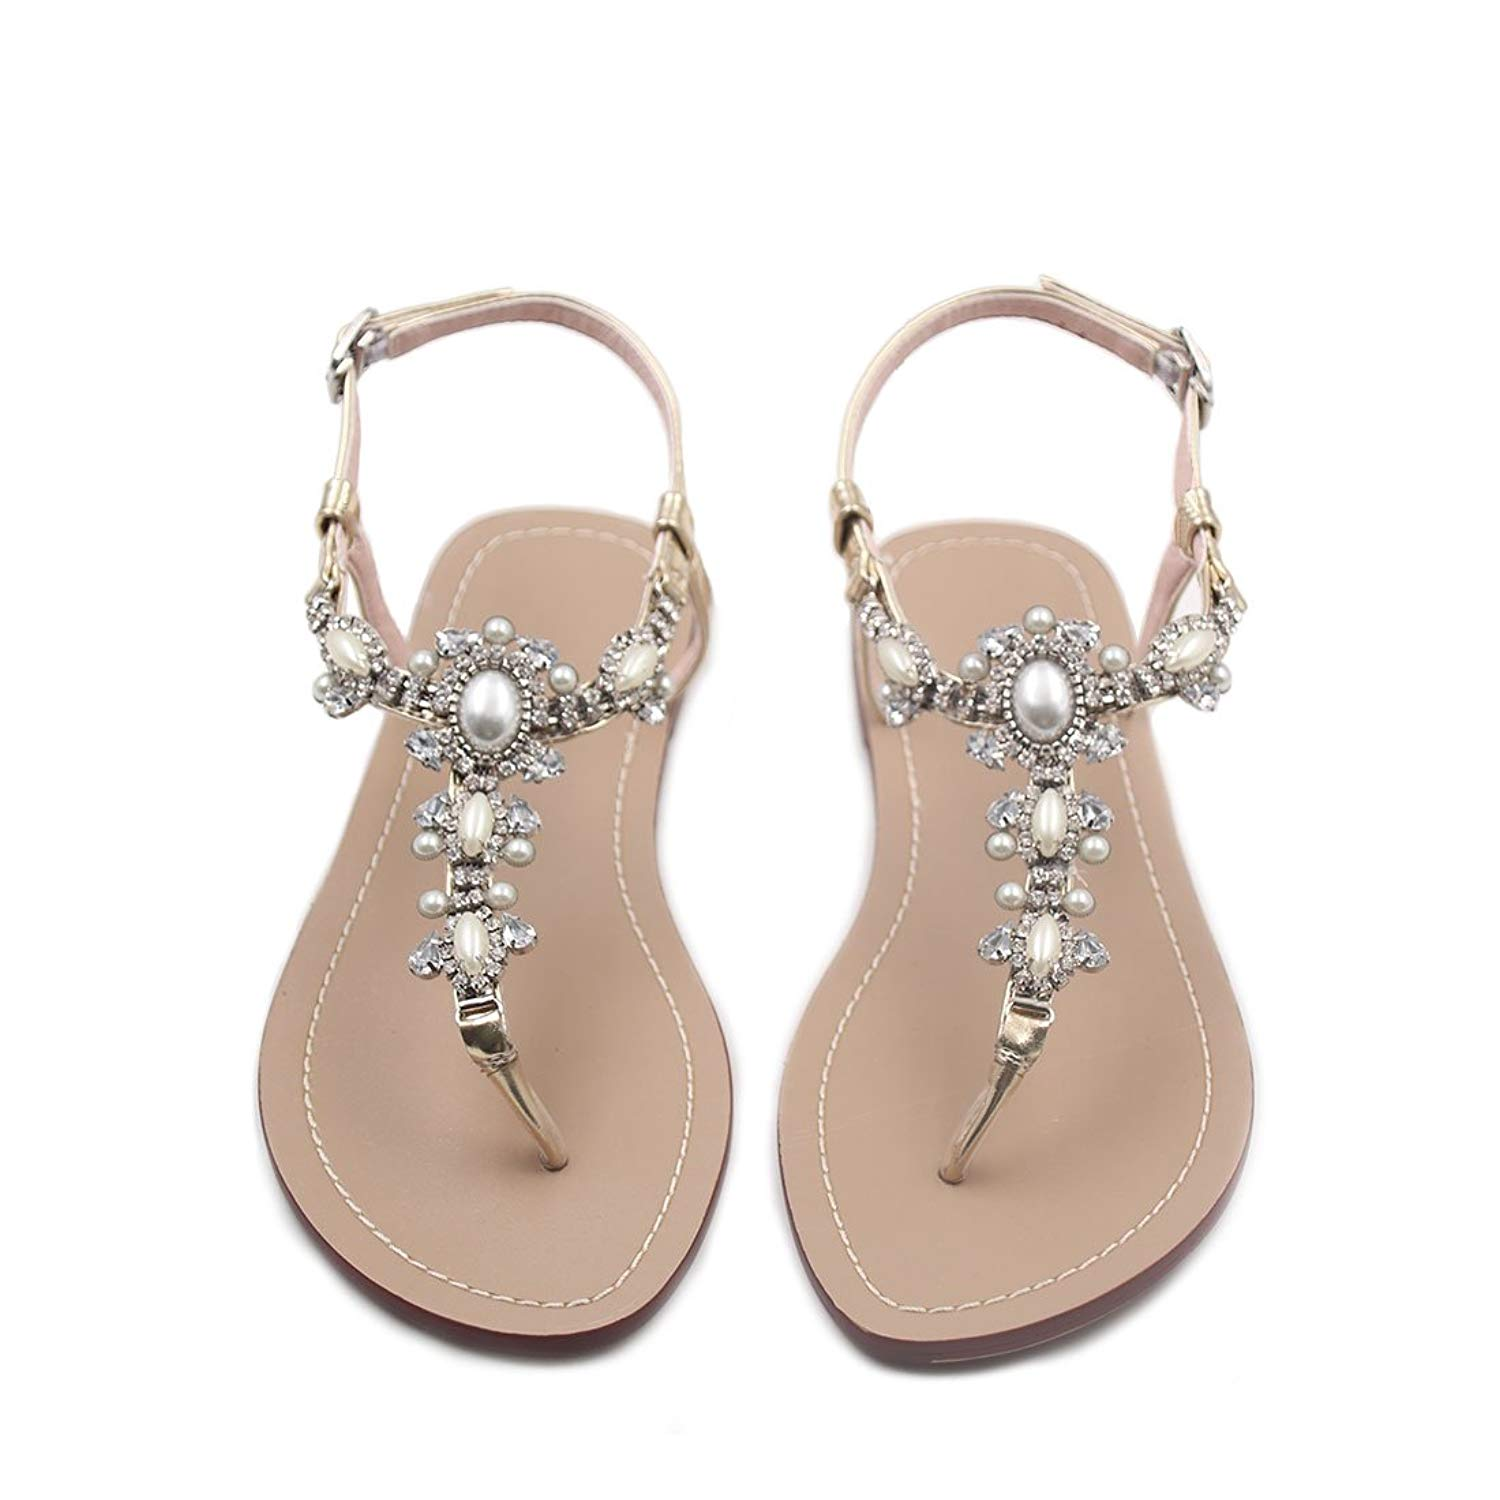 795f43f2d023f Get Quotations · Flat Sandals with Rhinestones for Women Flip Flop Wedding  Gladiator Shoes Gold Color